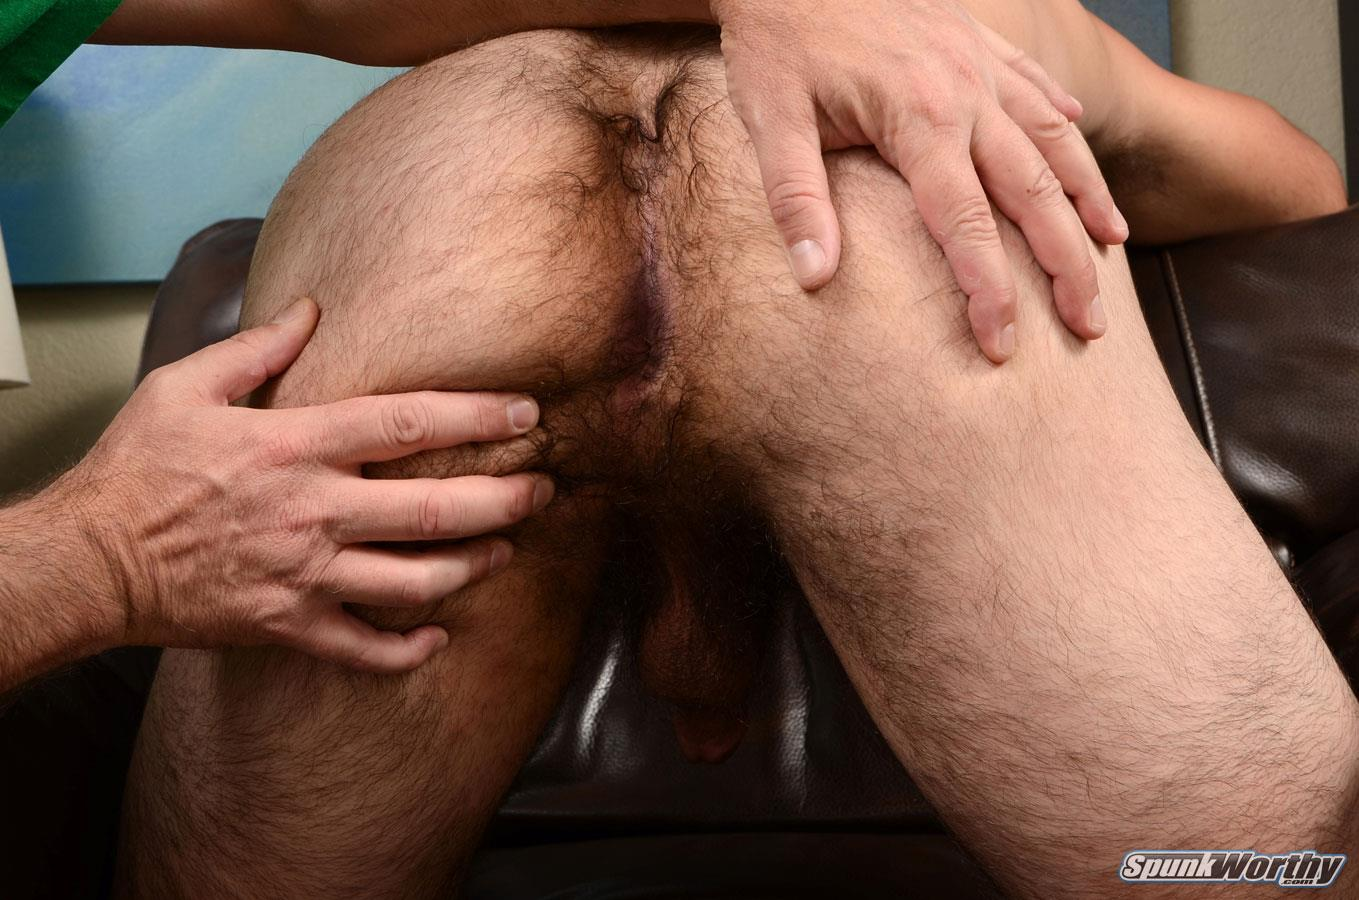 SpunkWorthy Nevin Straight Redneck Marine Gets A Blowjob and Rimming Amateur Gay Porn 08 Straight Hairy Redneck Marine Cub Gets A Blowjob and Rimming